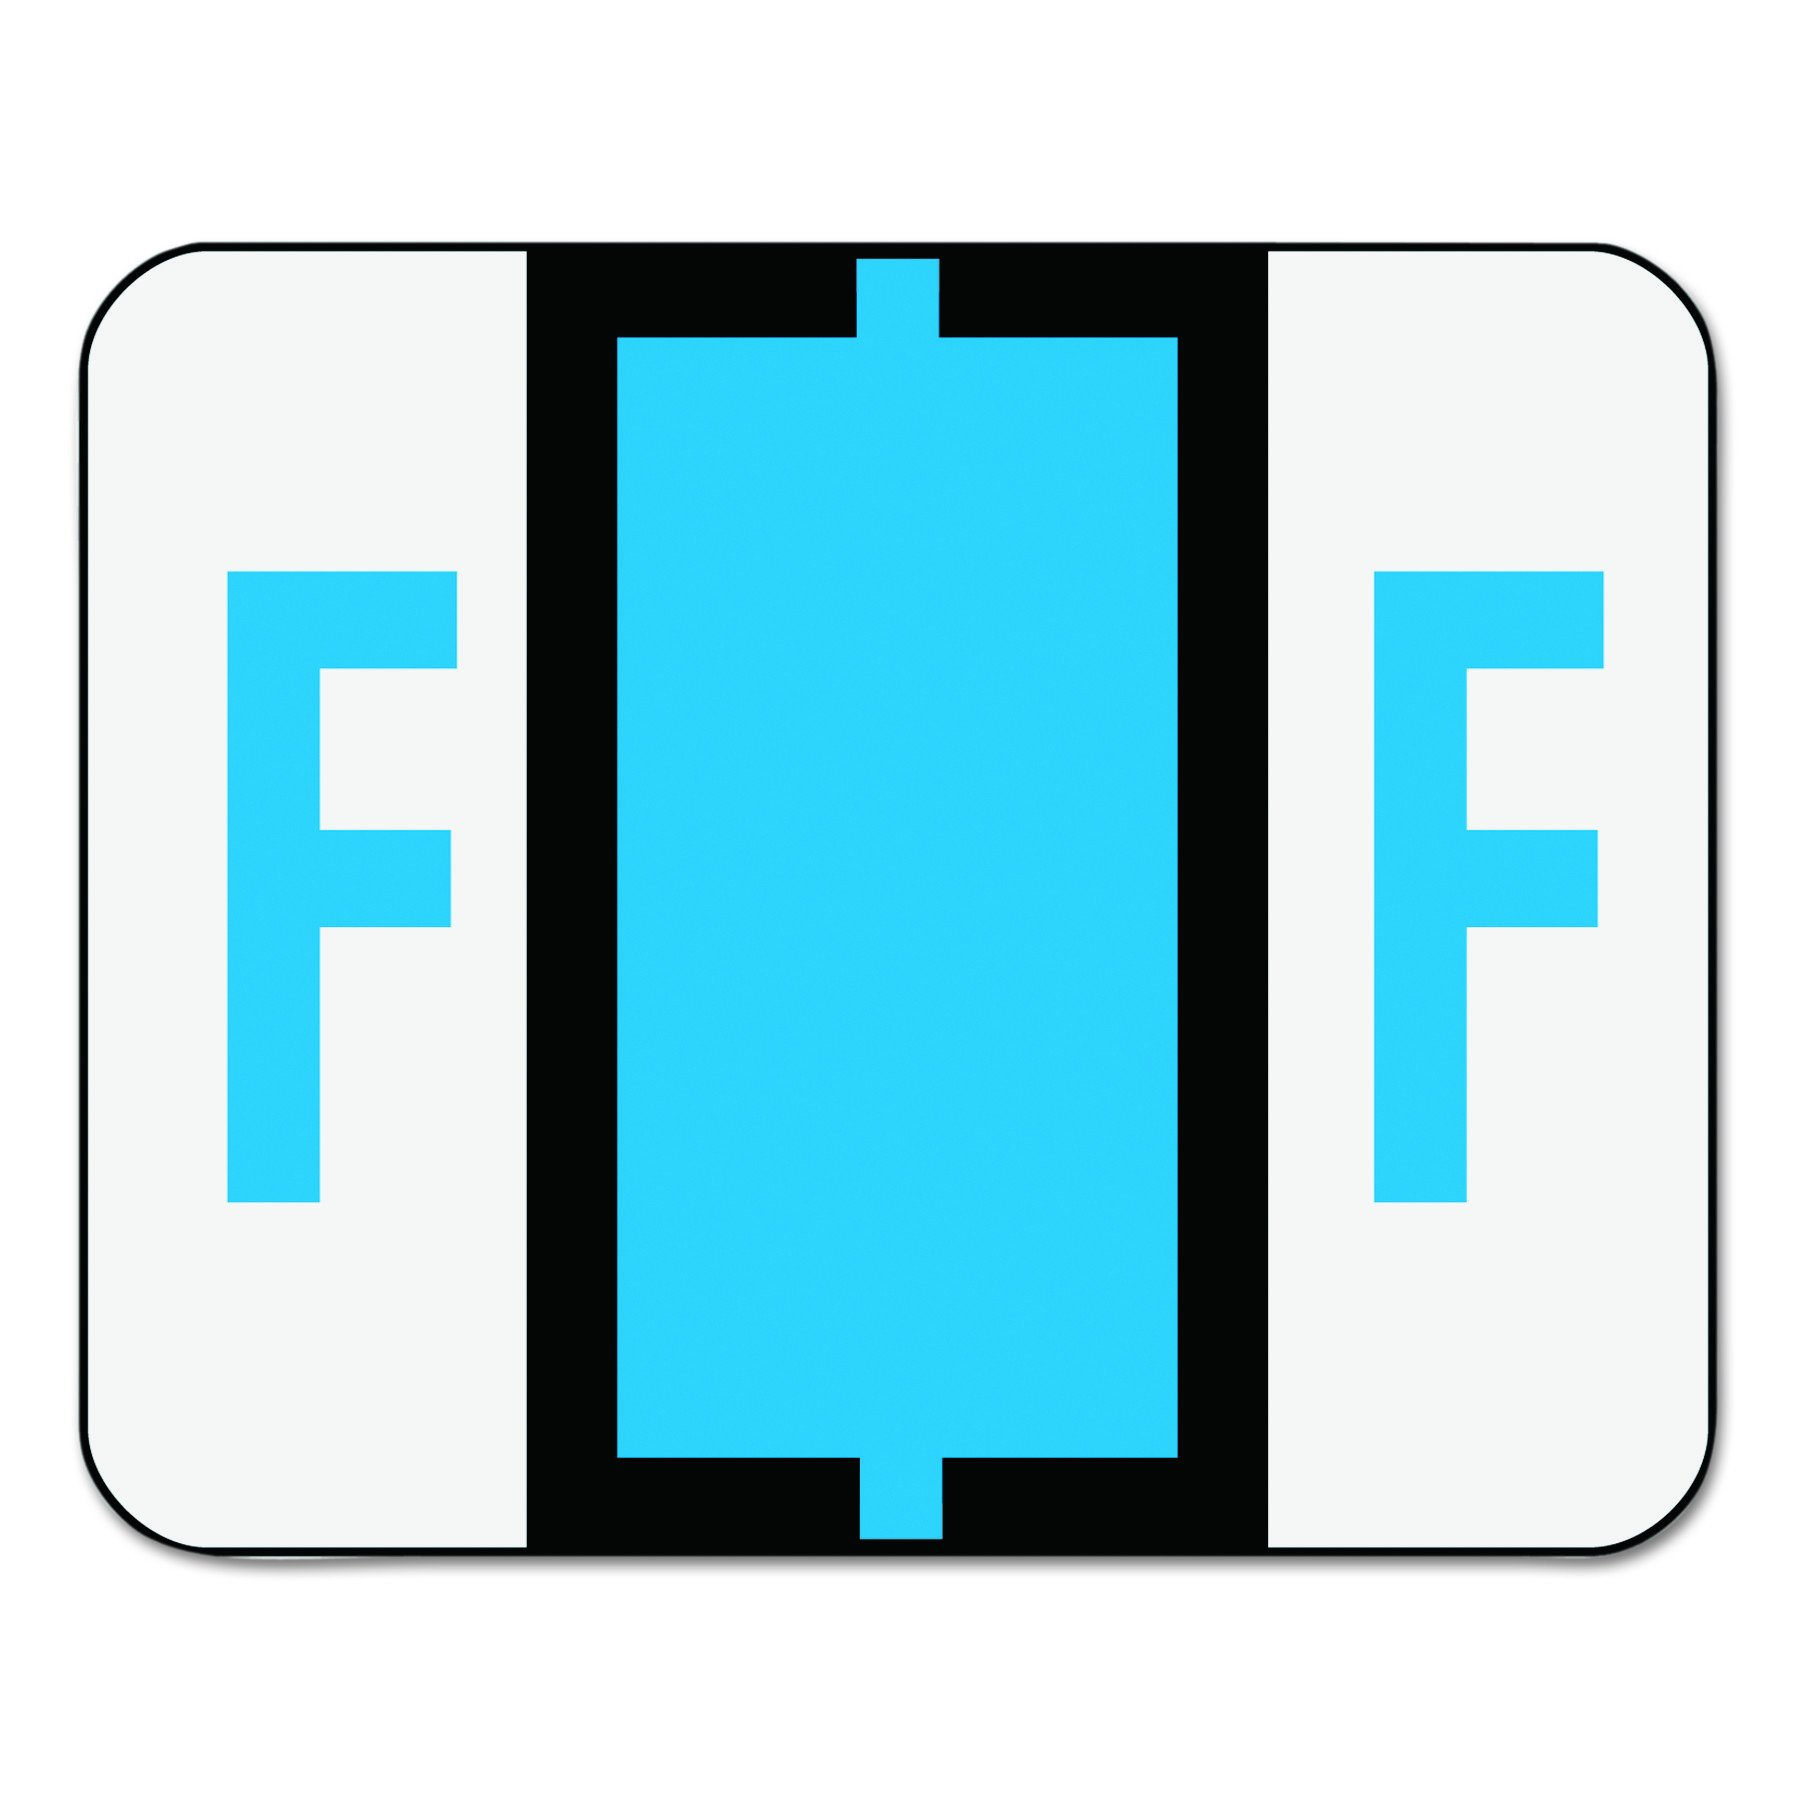 Smead BCCR Bar-Style Alphabetic Color-Coded Labels, Letter F, Blue, 500 Labels per Roll (67076) by Smead